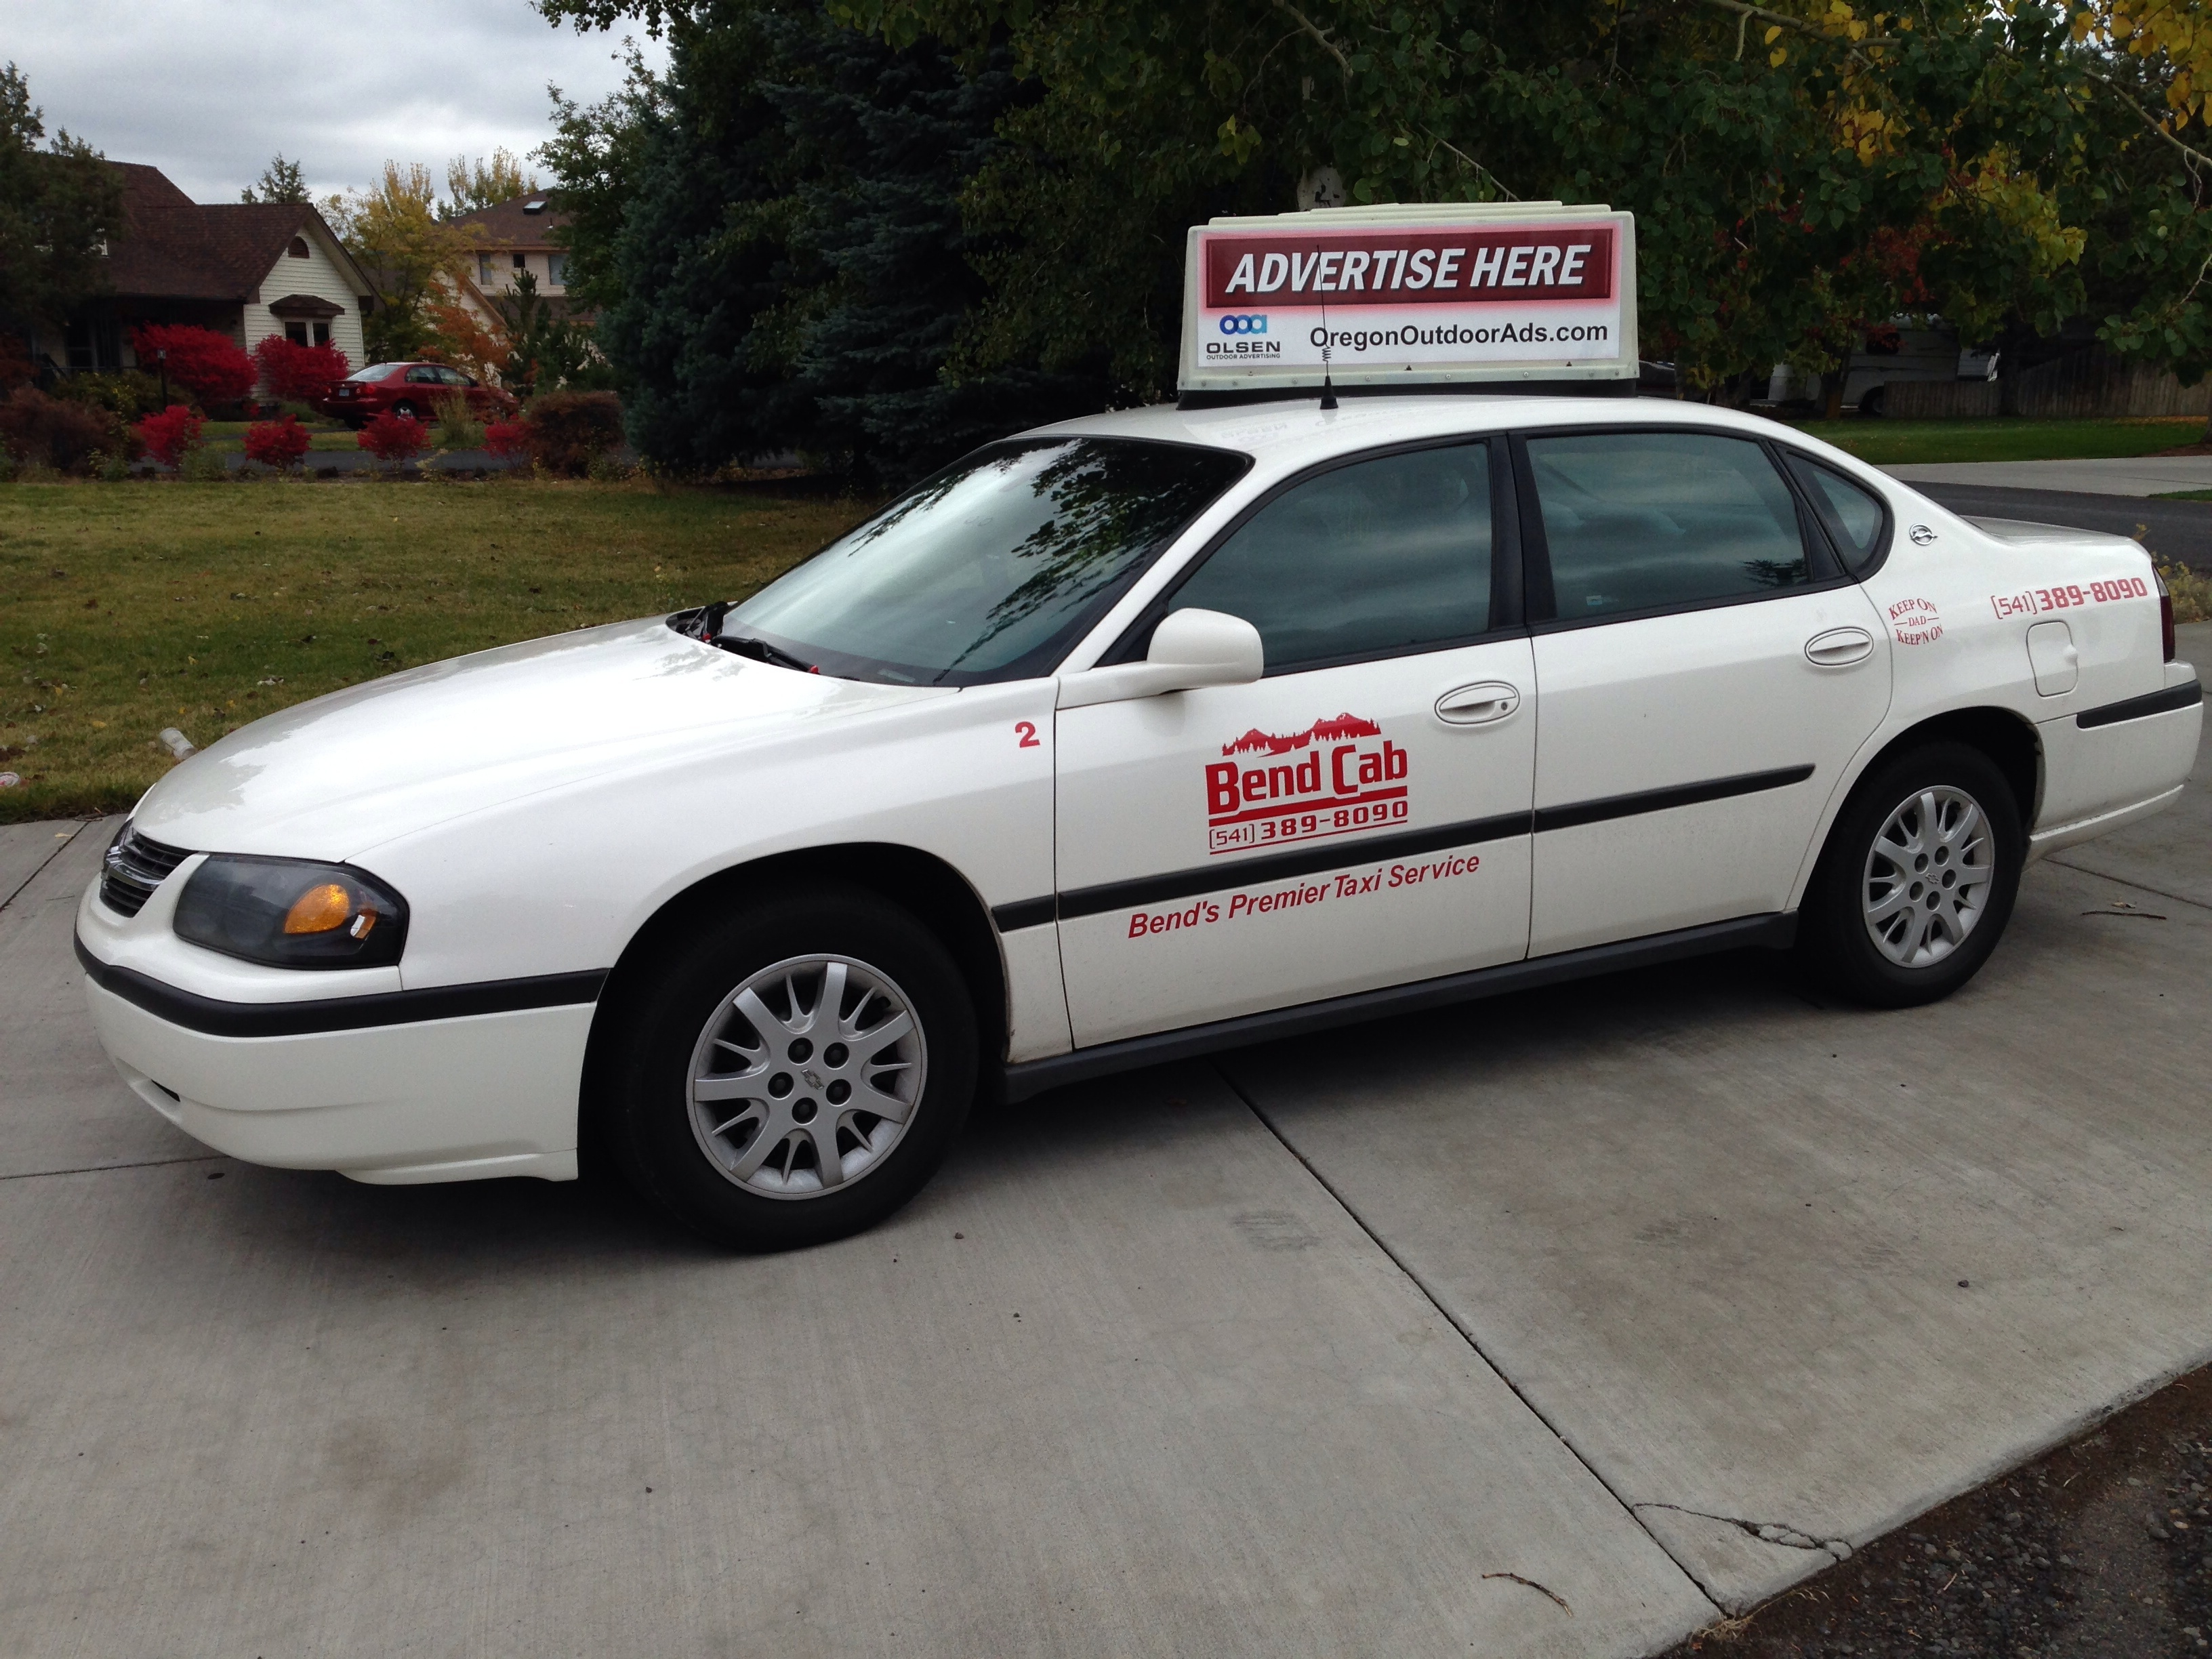 Bend Taxi and Shuttle Service - ad image